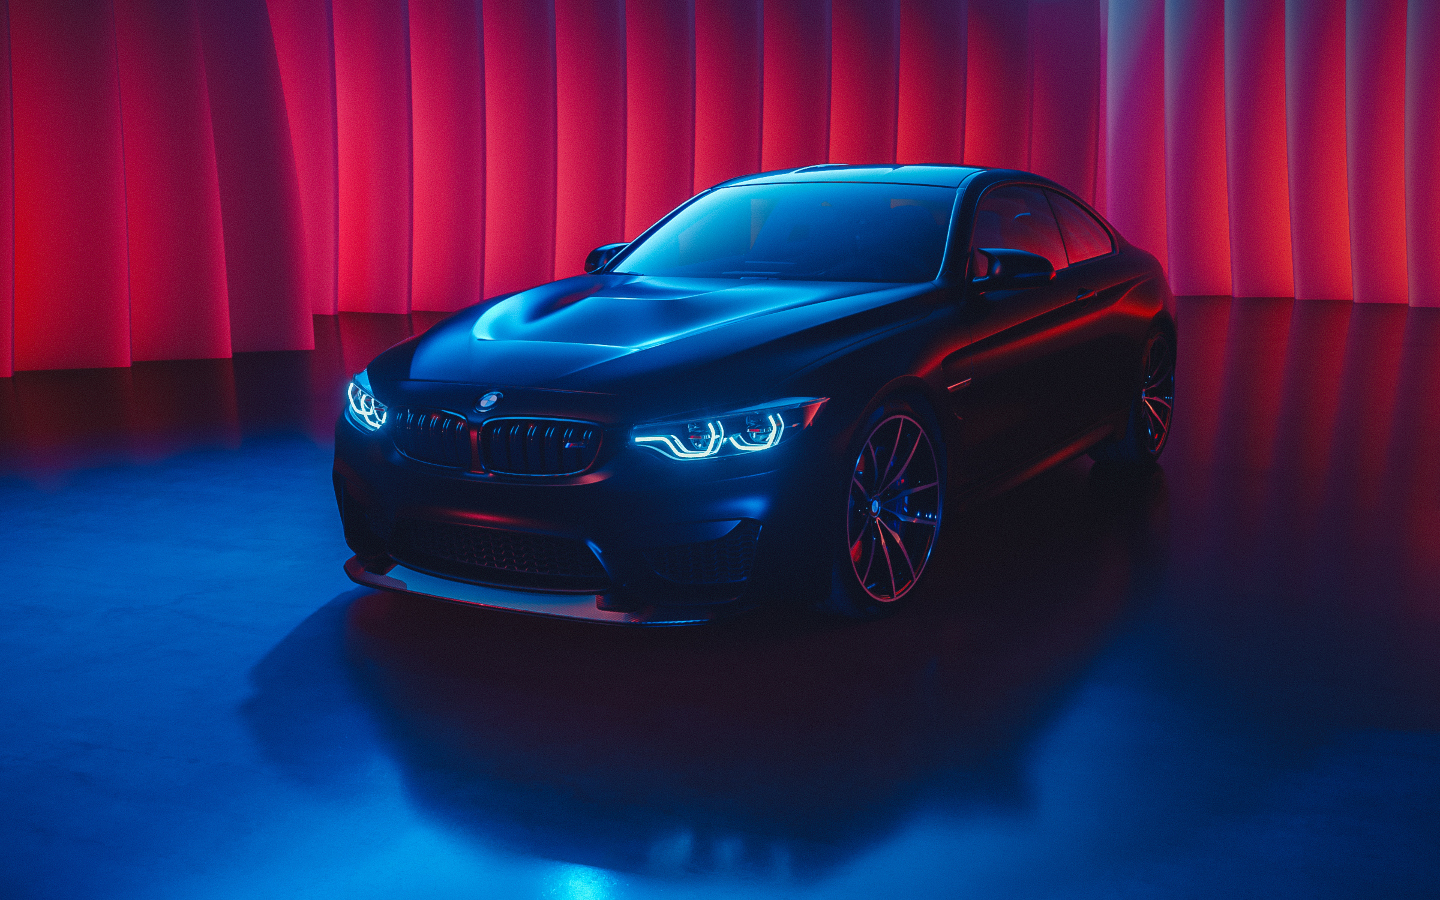 Bmw M4 Neon Color Art Hd 4k Wallpaper